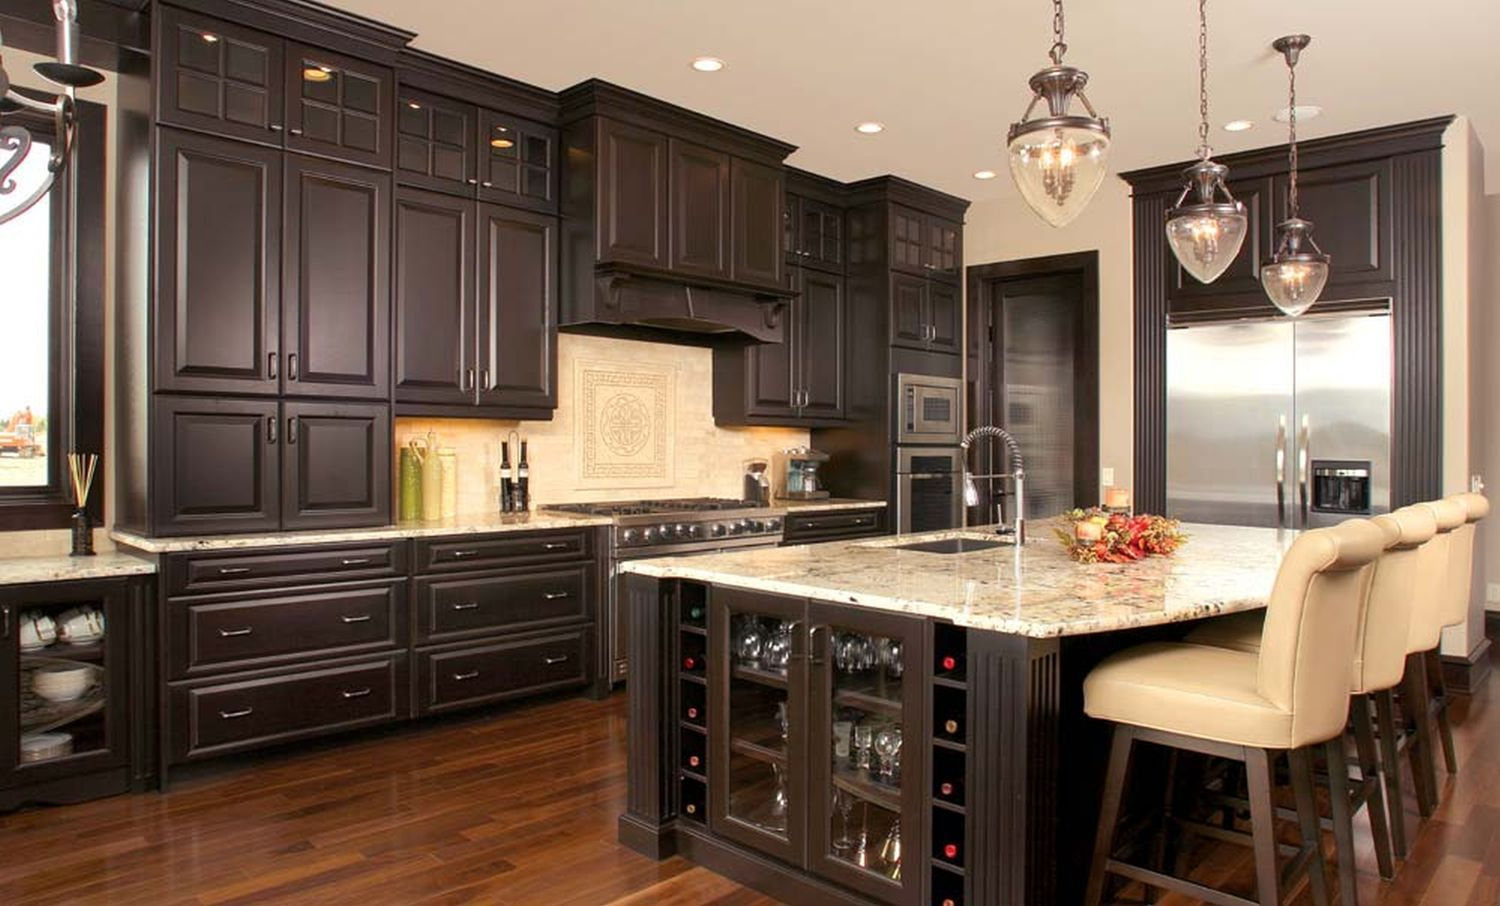 extravagant kitchen islands | ... Kitchen With Vanity Sink And ...